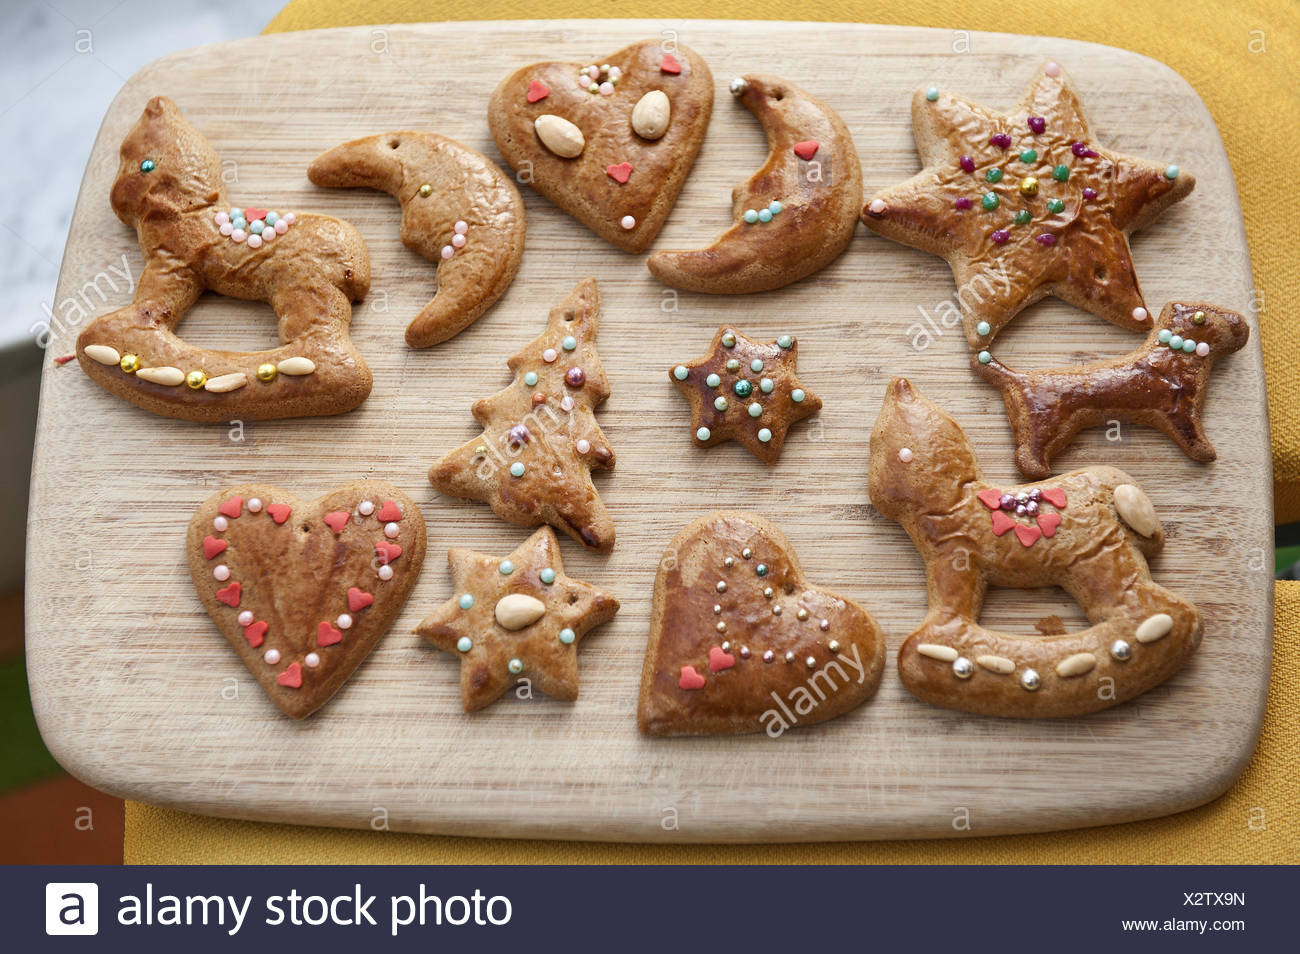 Gingerbread Decorates Motifs Passed Away Crumble Wooden